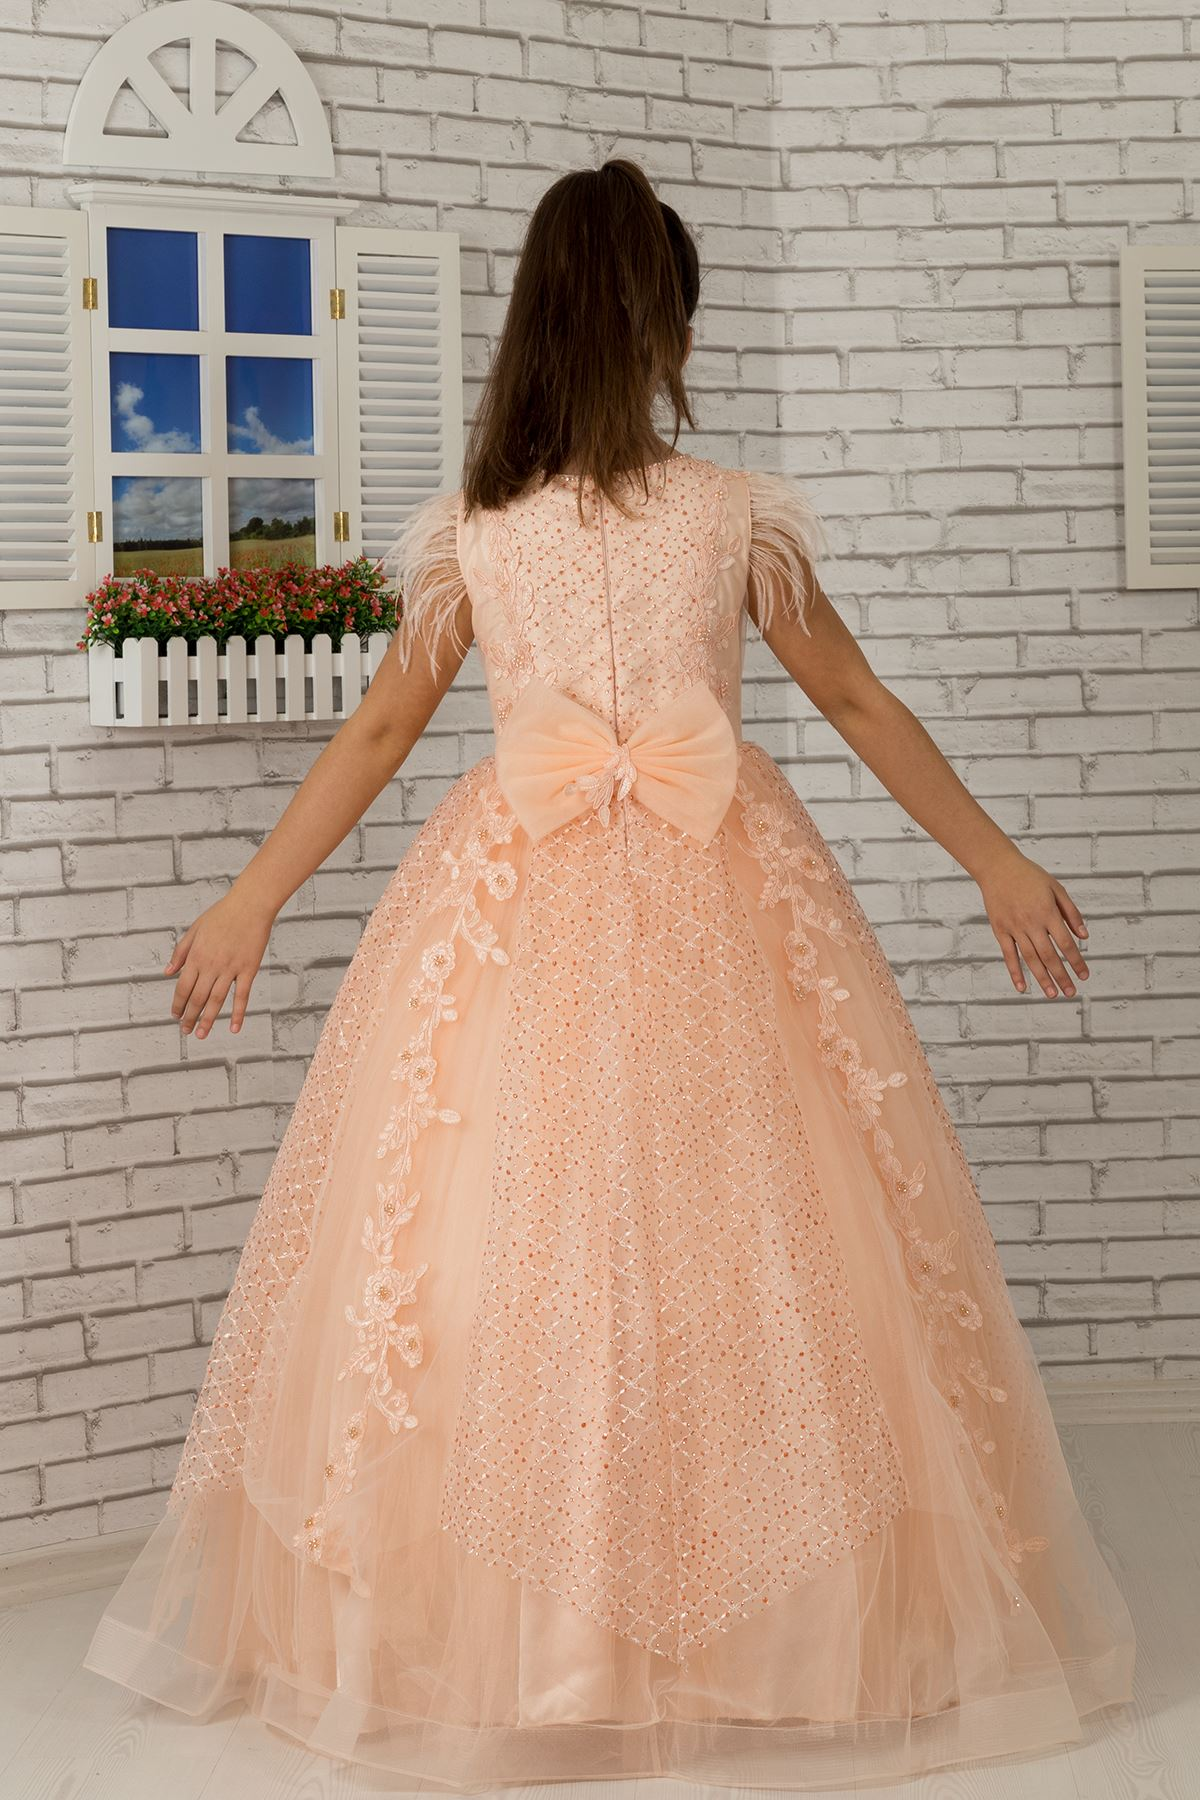 Fluffy Girl's Evening Dress 603 Salmon with shoulder feather detail, appliqué, silvery tulle